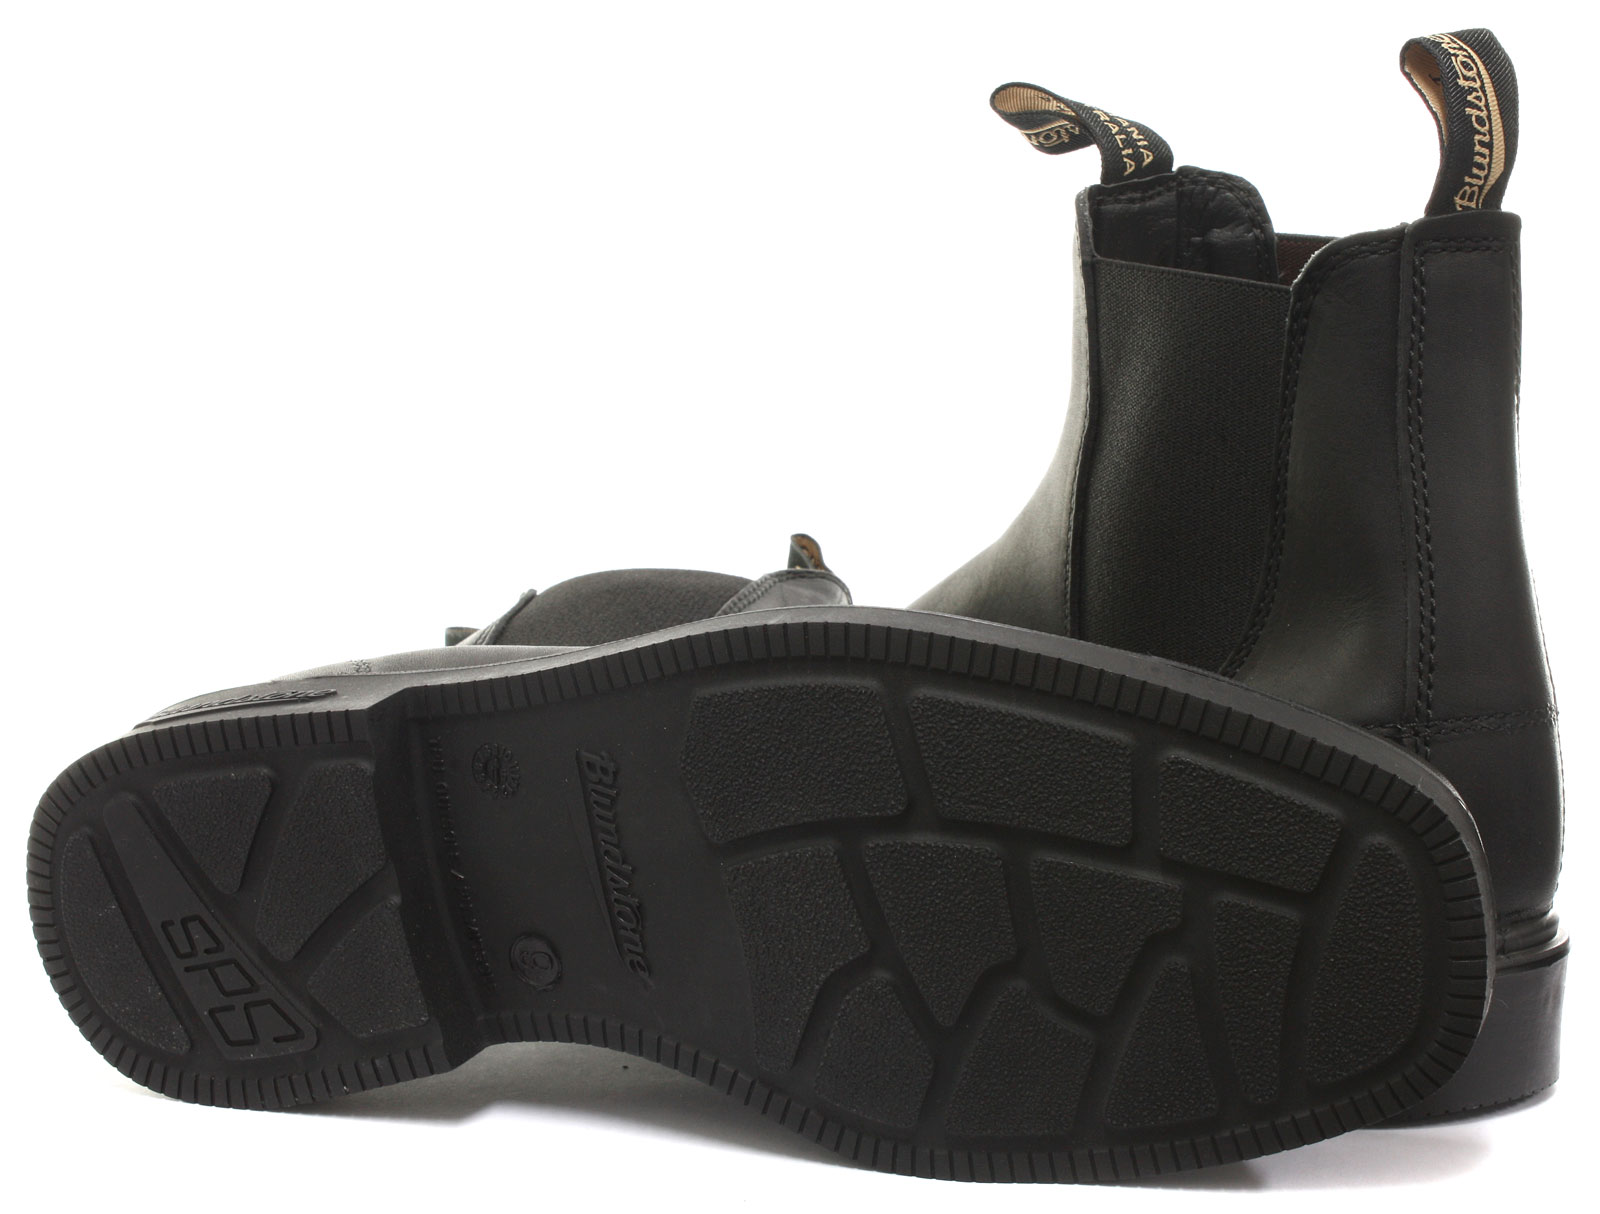 Blundstone 062/063 Chisel Toe Unisex SIZES Chelsea Dress Stiefel ALL SIZES Unisex AND COLOURS 171f7c